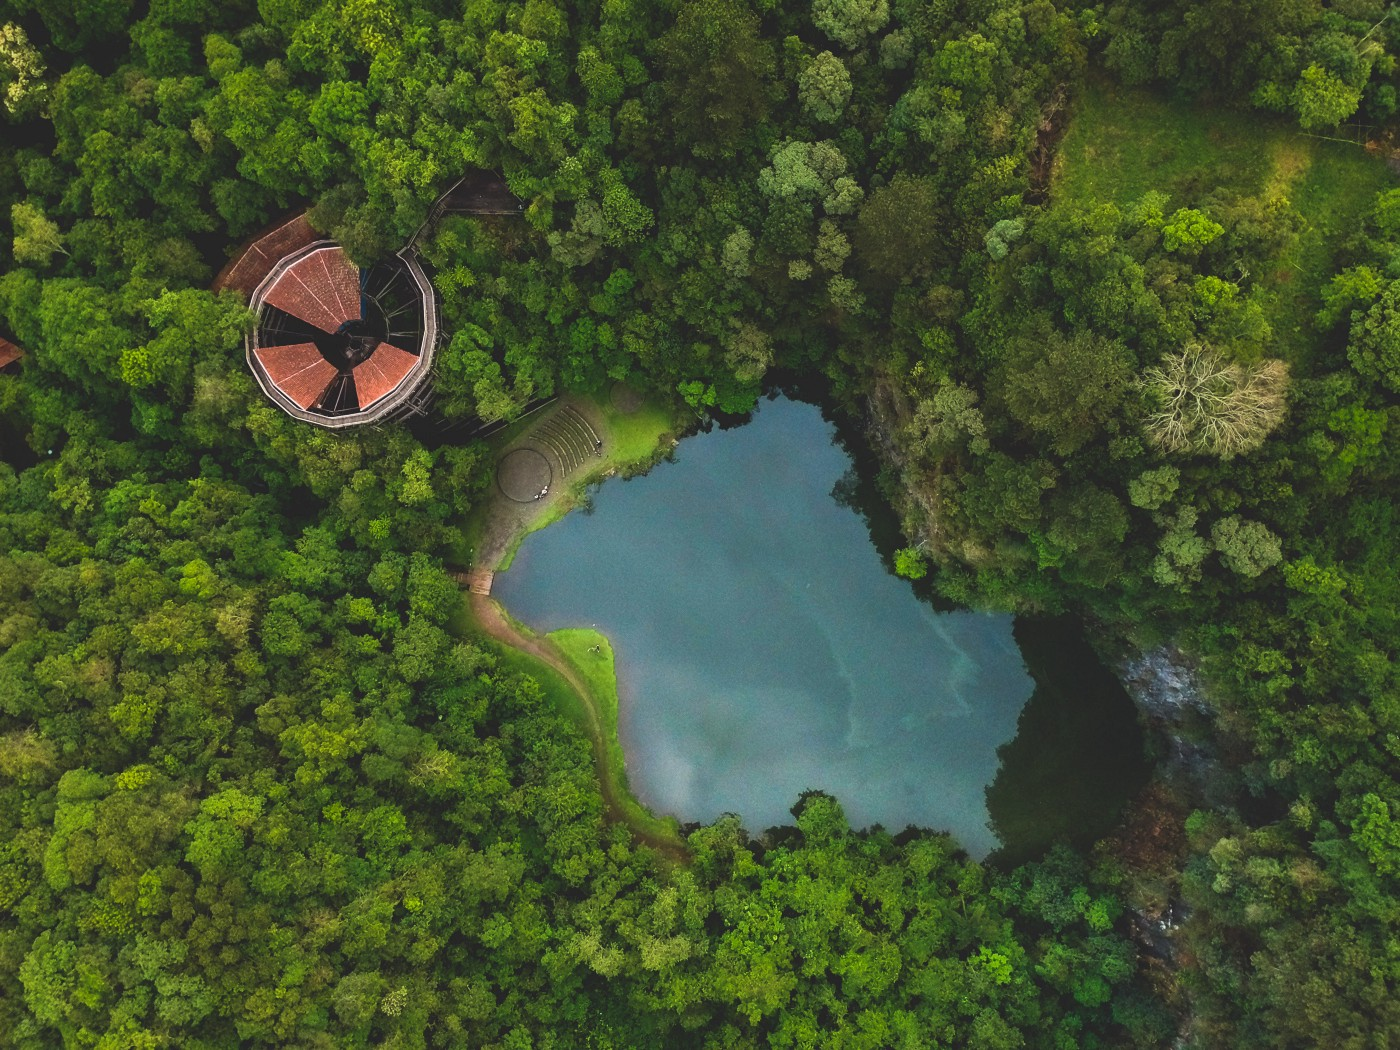 Picture of an abandoned object in the middle of a lush green forest and small lake.